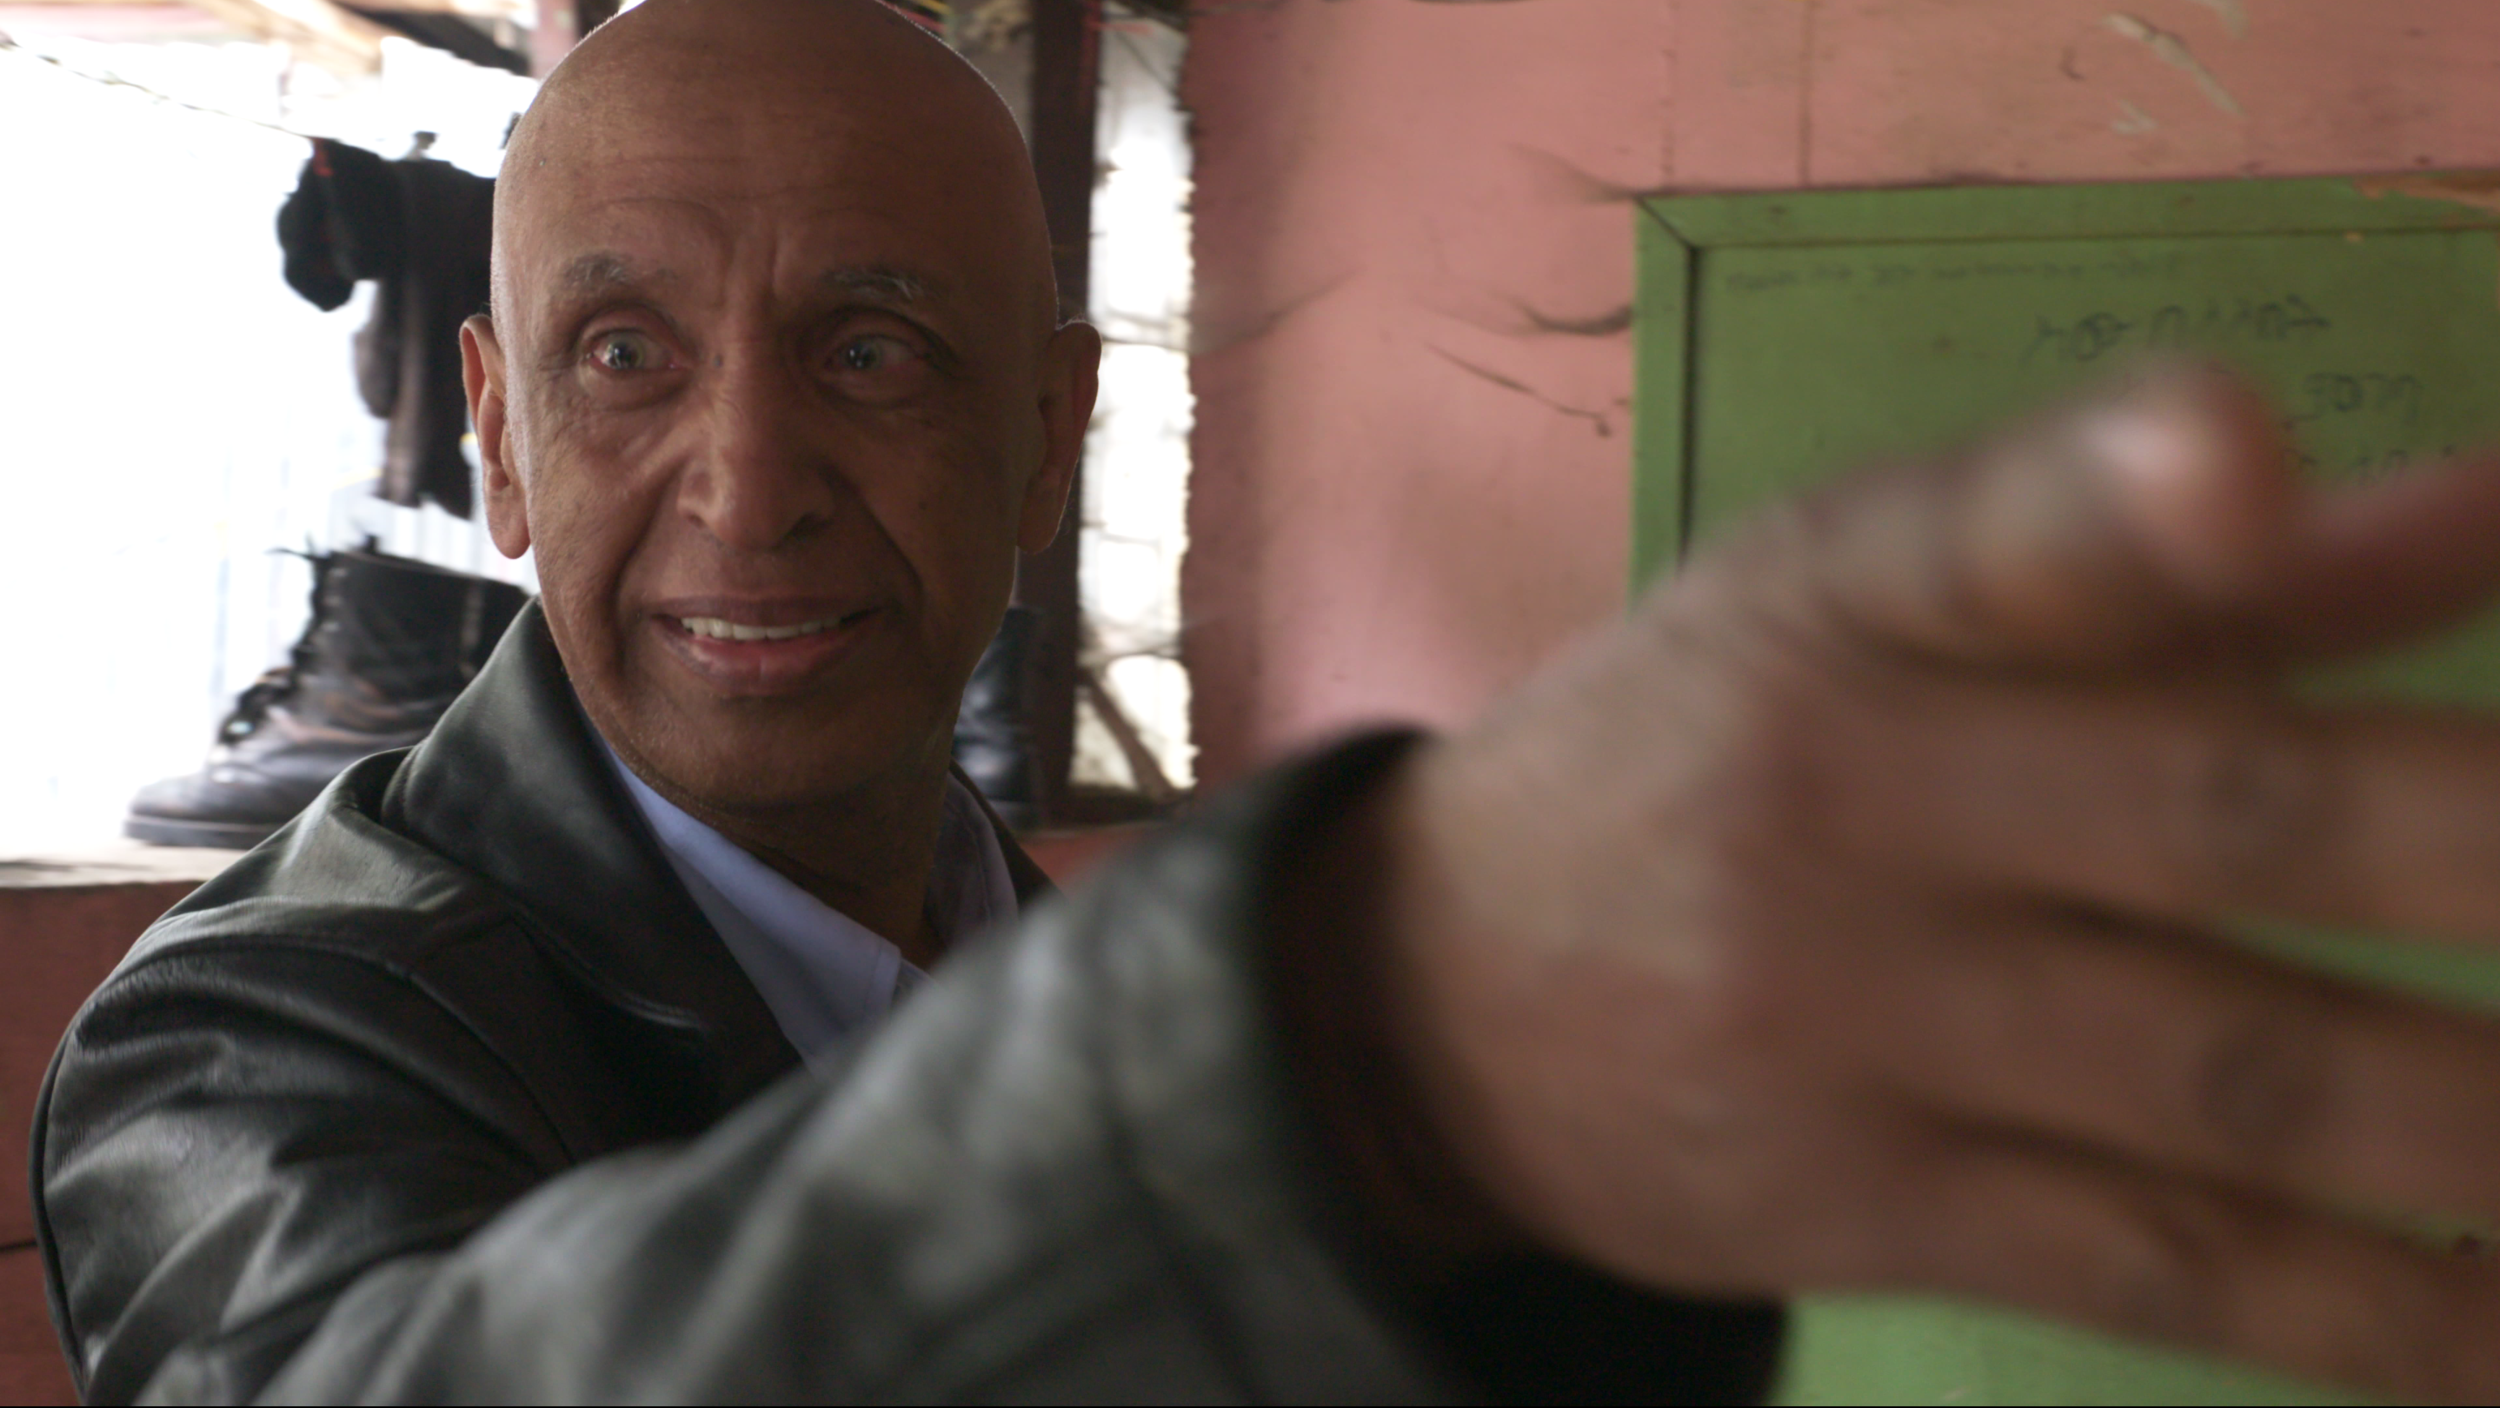 HIGHER 15 - HIGHER 15 is the unbelievable true story of an unlawfully imprisoned Ethiopian man who risks his life to escape from jail and flees to the United States, only to have a chance encounter with his vicious prison guard three decades later.